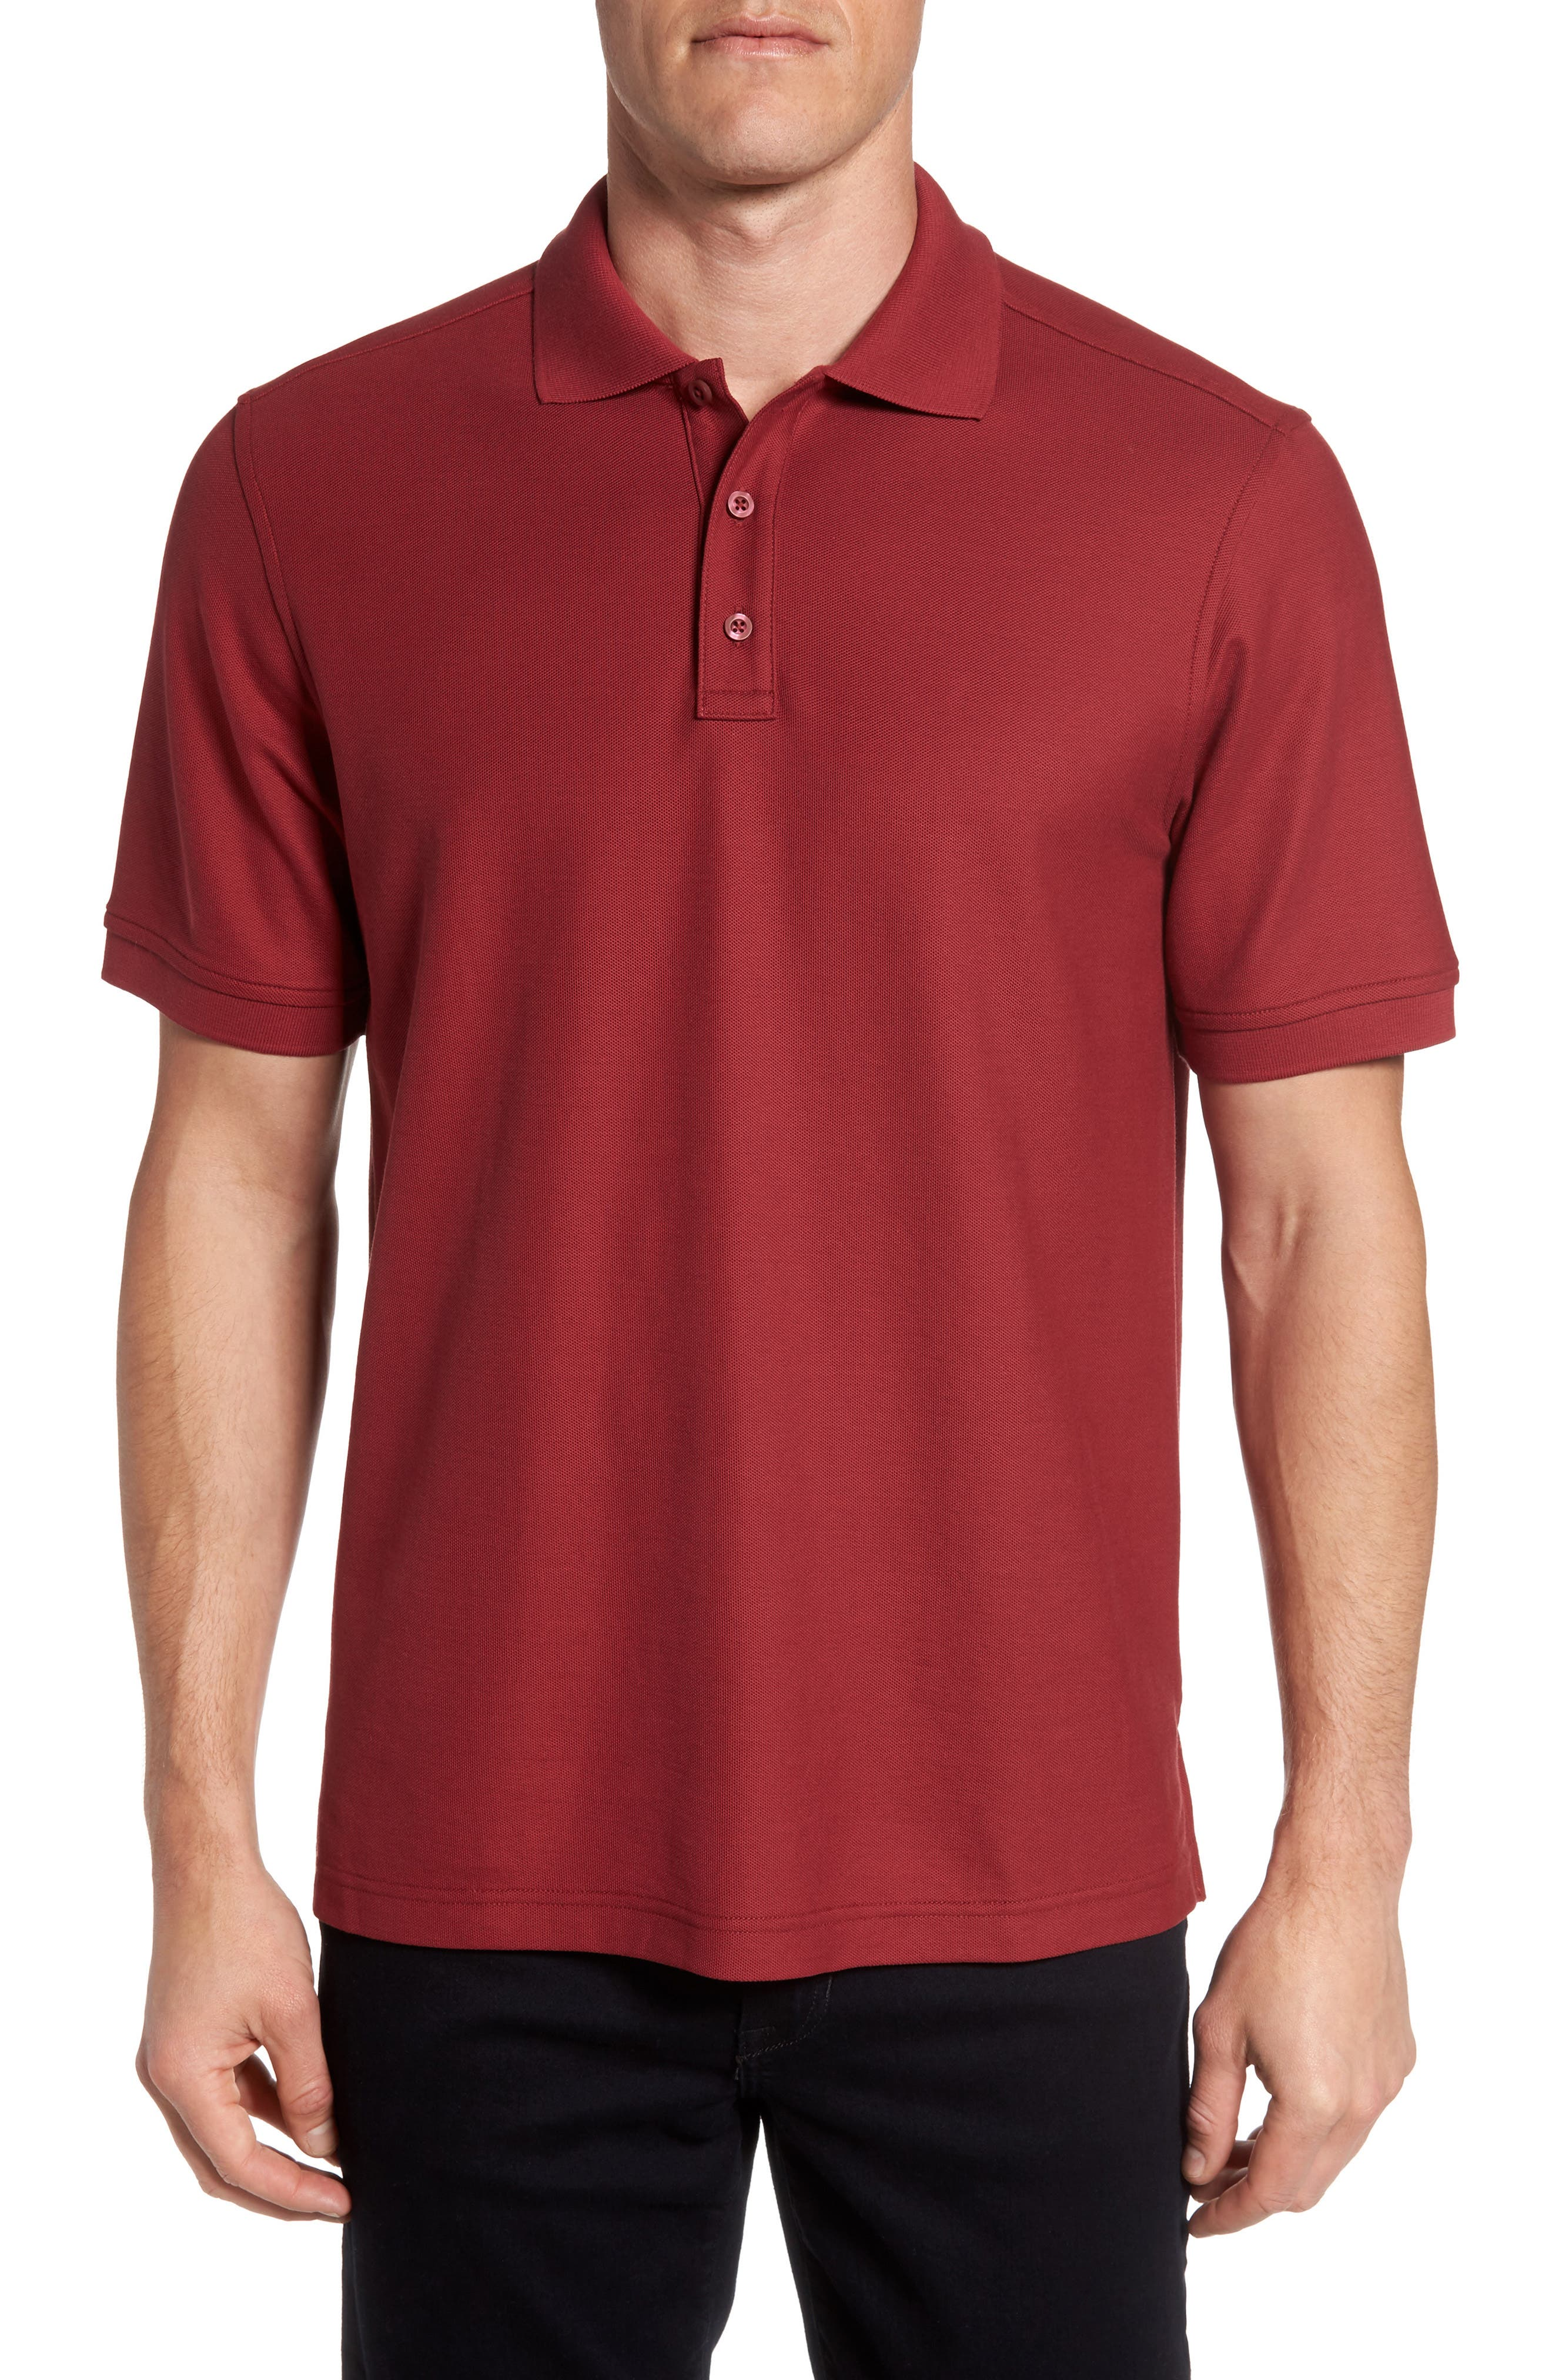 Alternate Image 1 Selected - Nordstrom Men's Shop 'Classic' Regular Fit Piqué Polo